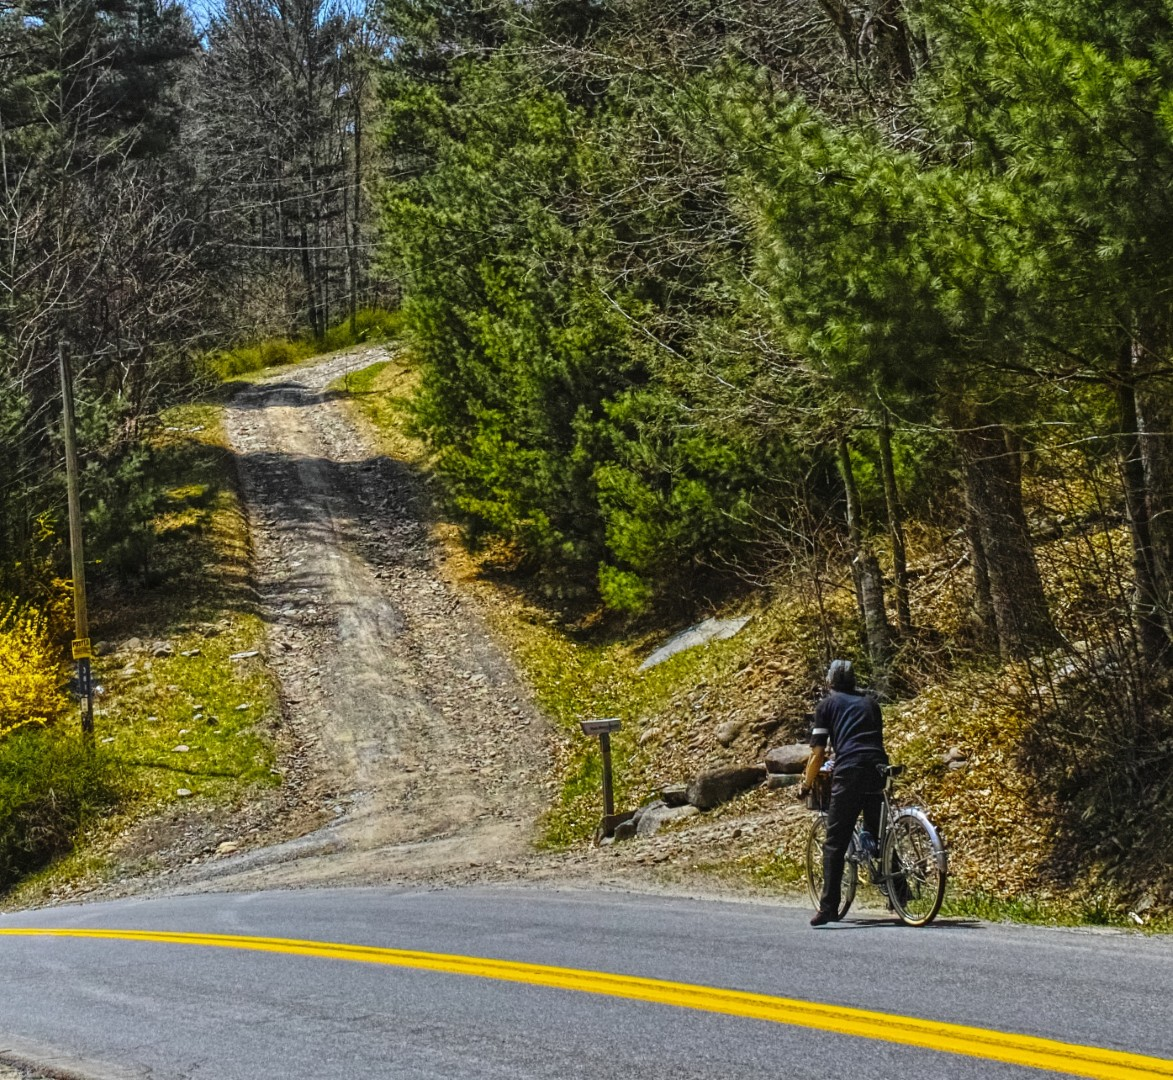 Cameras | Riding the Catskills